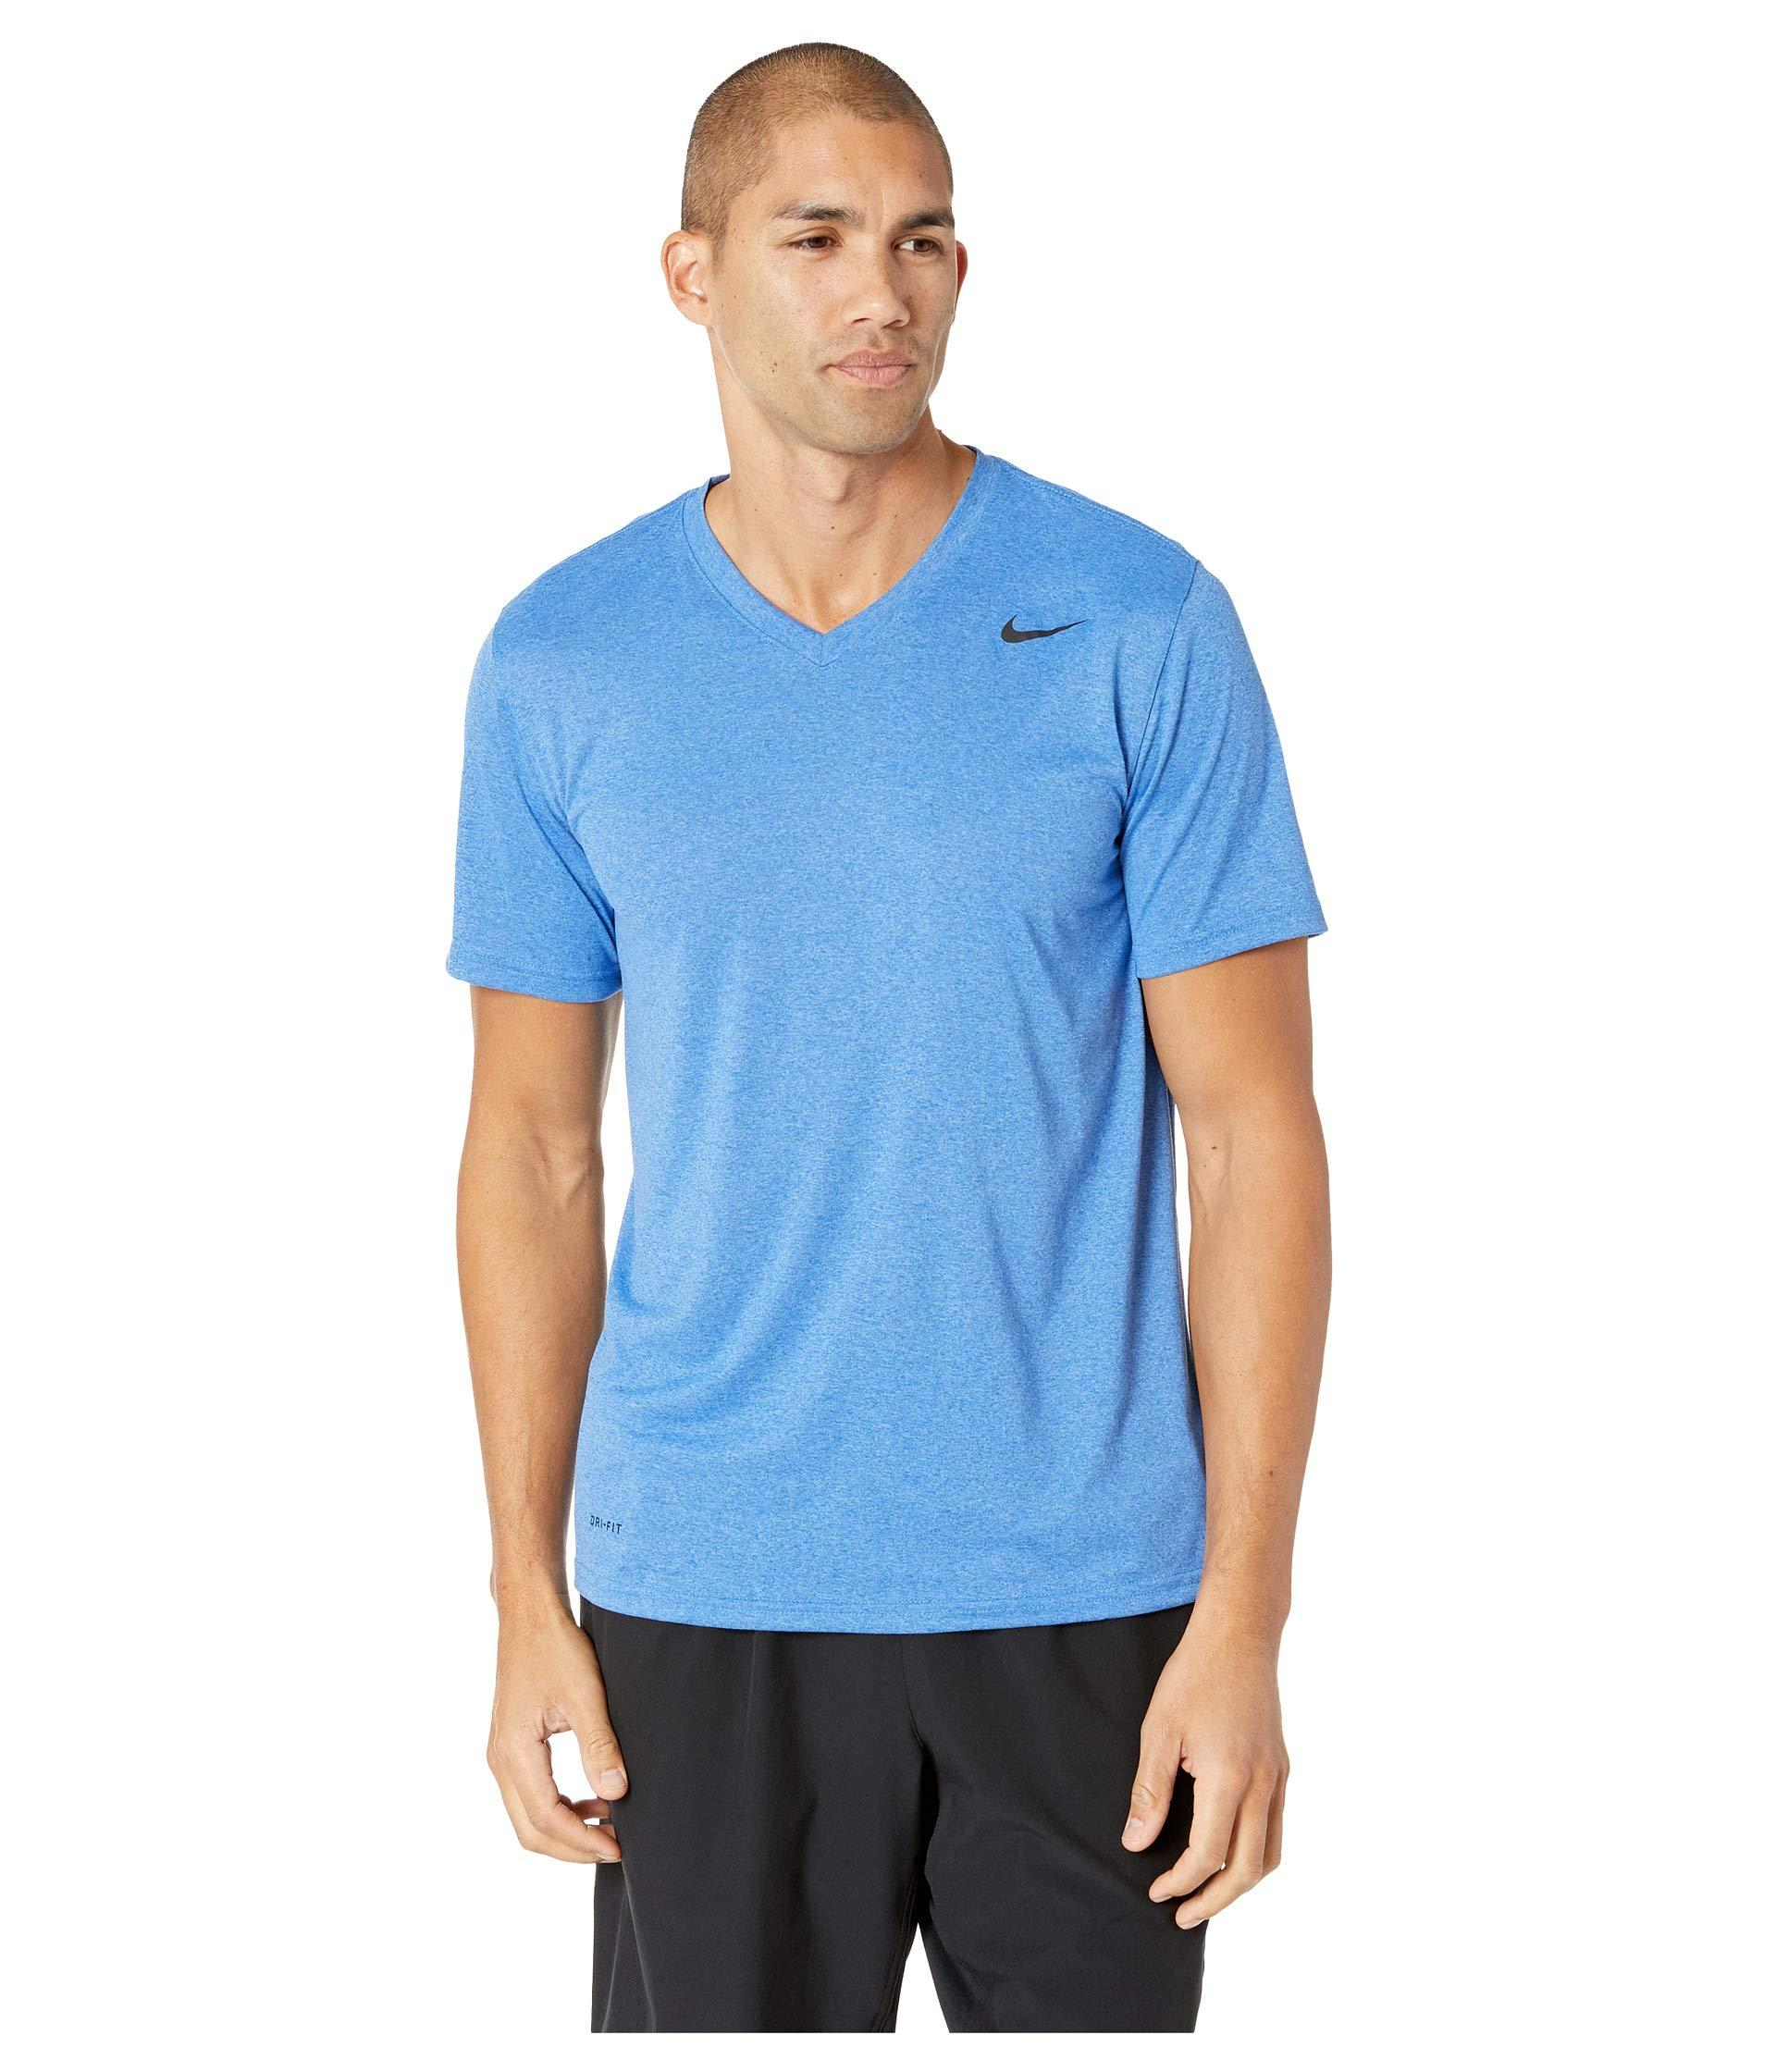 91f3009f Lyst - Nike Legend 2.0 Short Sleeve V-neck Tee in Blue for Men